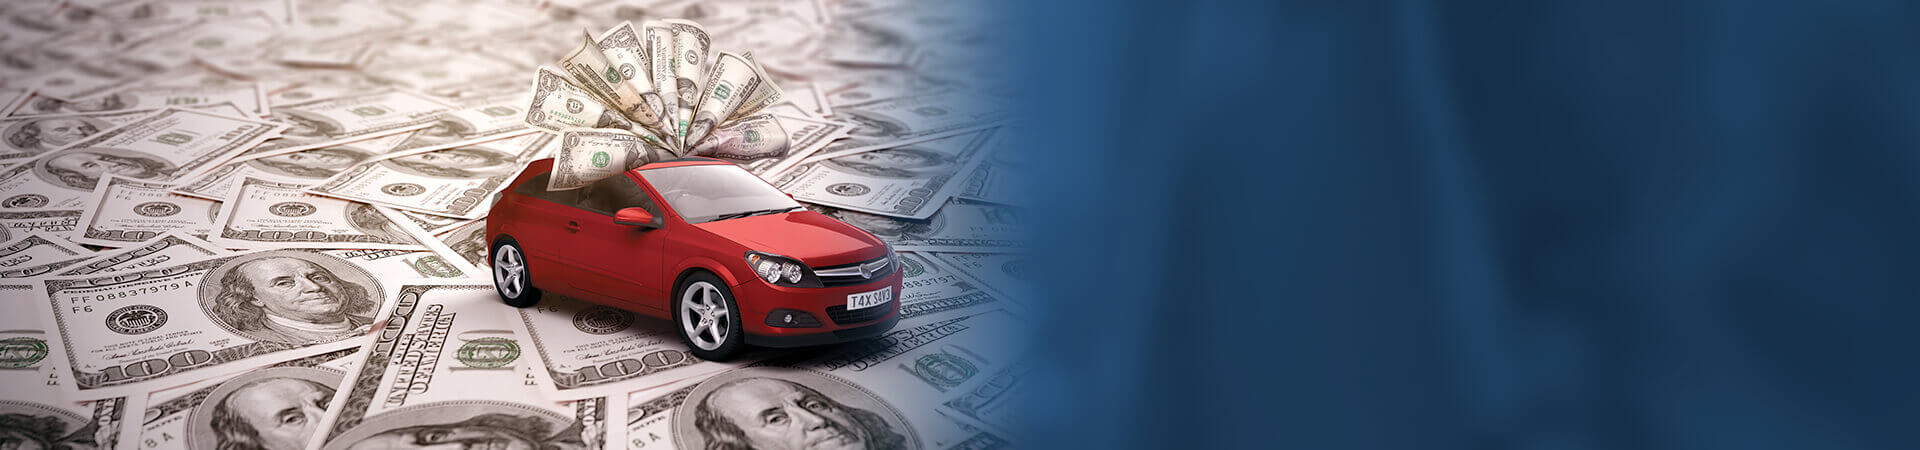 Reward yourself and your car with your refund